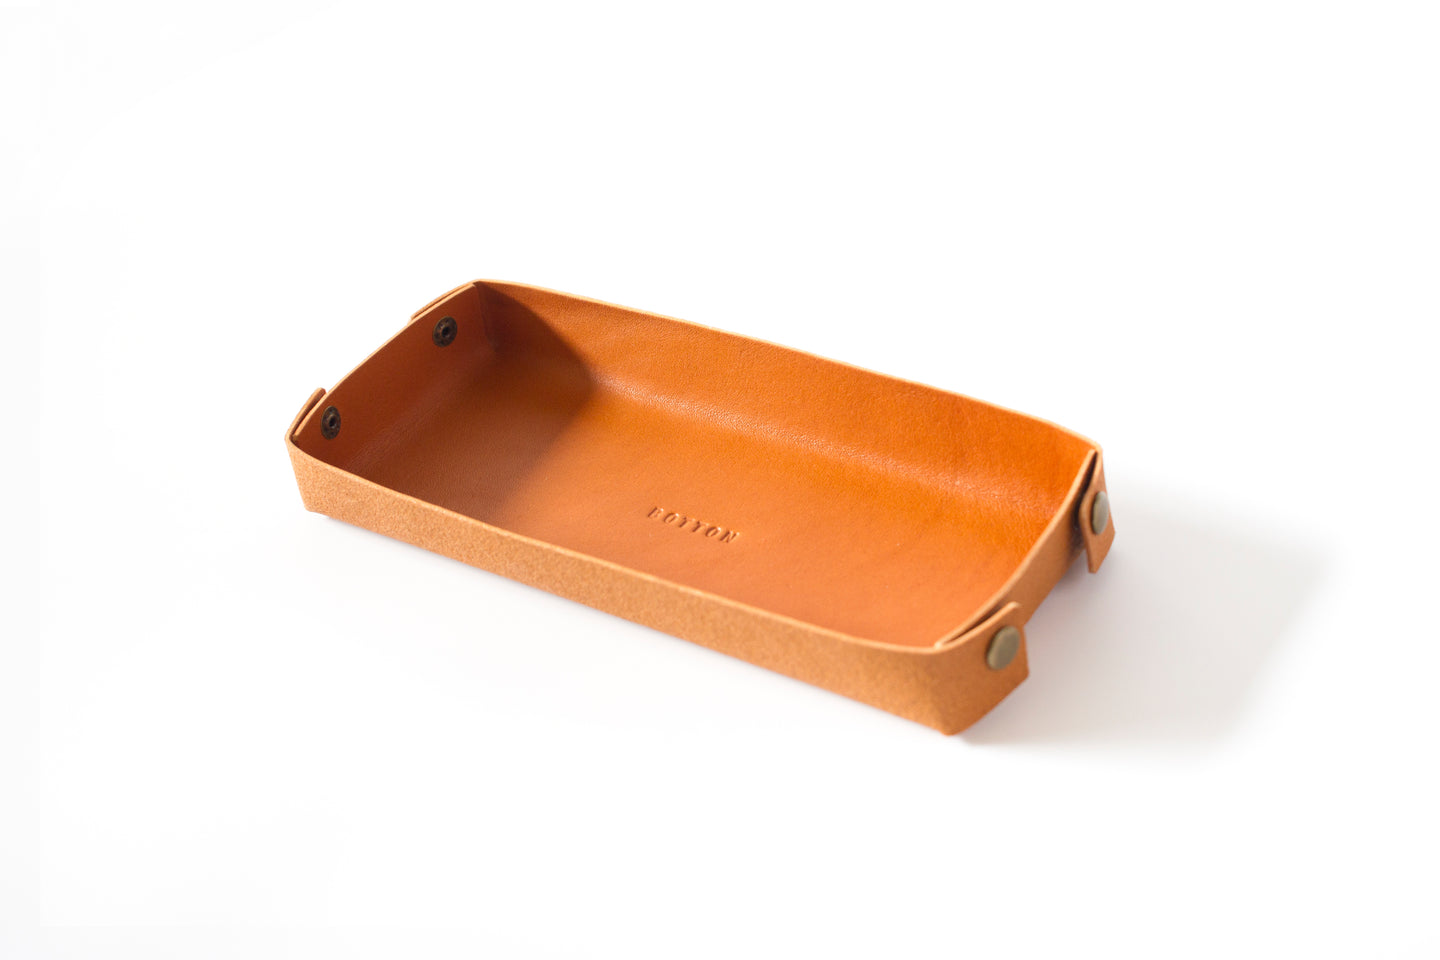 Desk Tray | Tan,Tray - Botton Studio